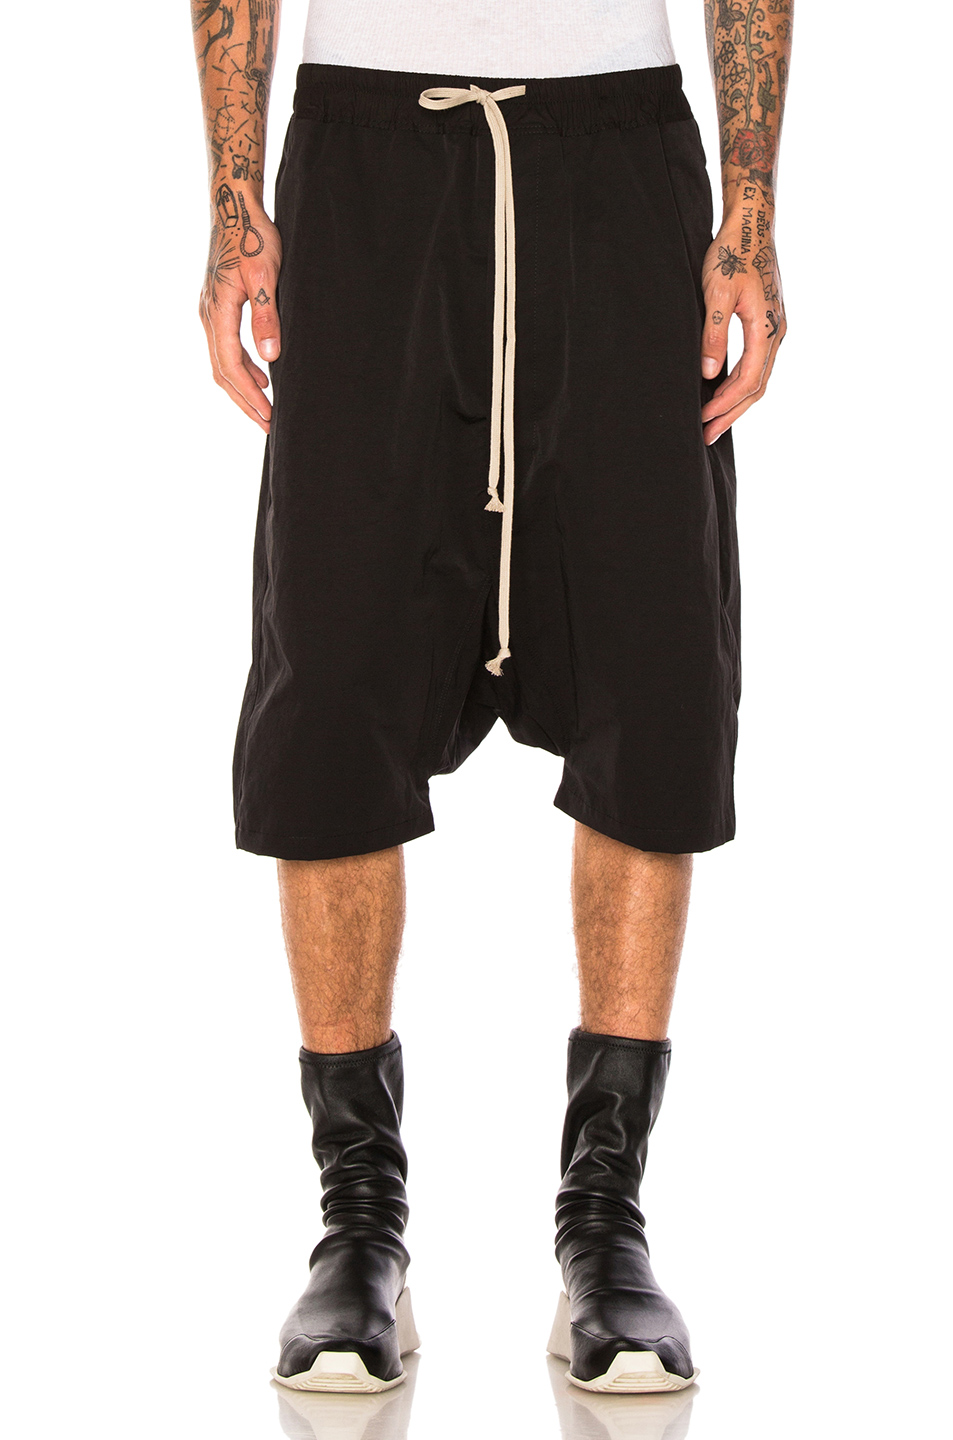 DRKSHDW by Rick Owens Shorts in Black